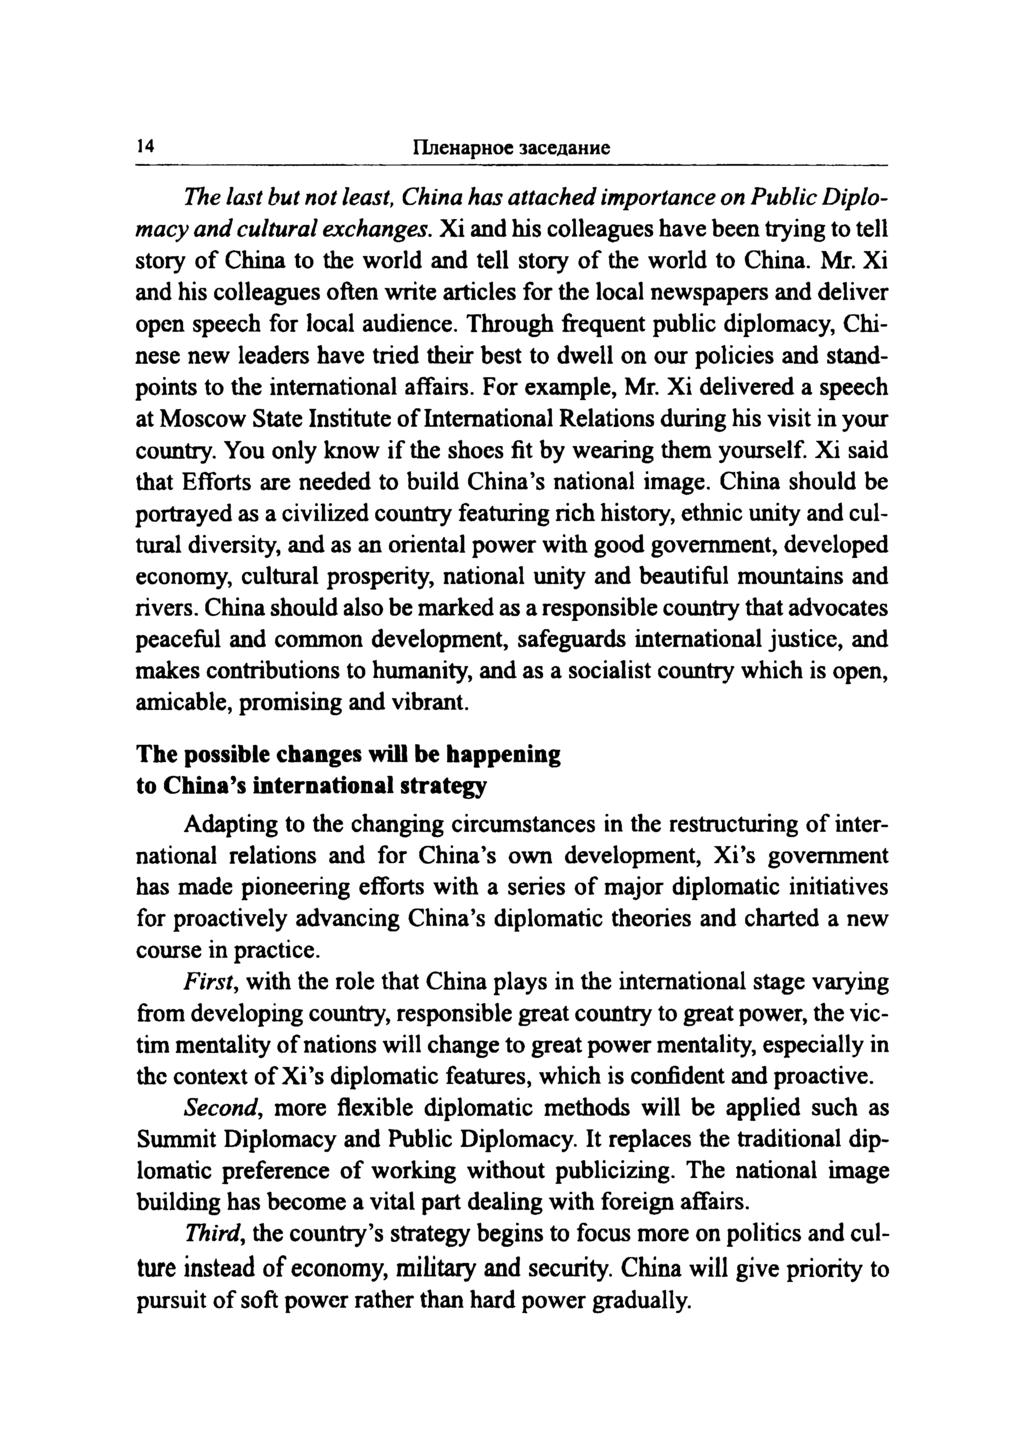 14 Пленарное заседание The last but not least, China has attached importance on Public Diplomacy and cultural exchanges.